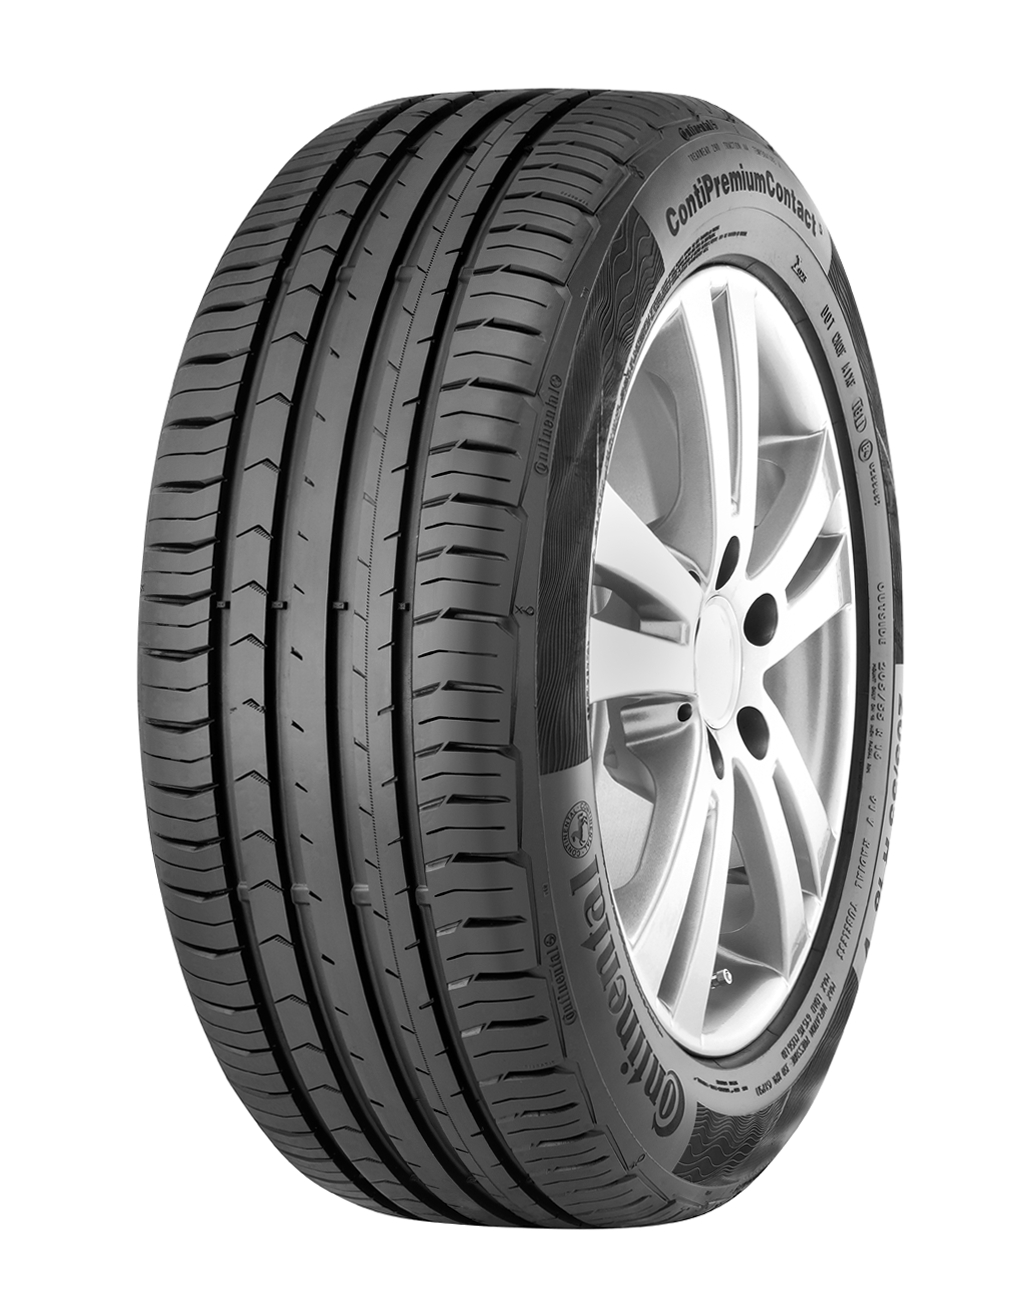 4x Continental ContiPremiumContact 5 215/65 R16 98